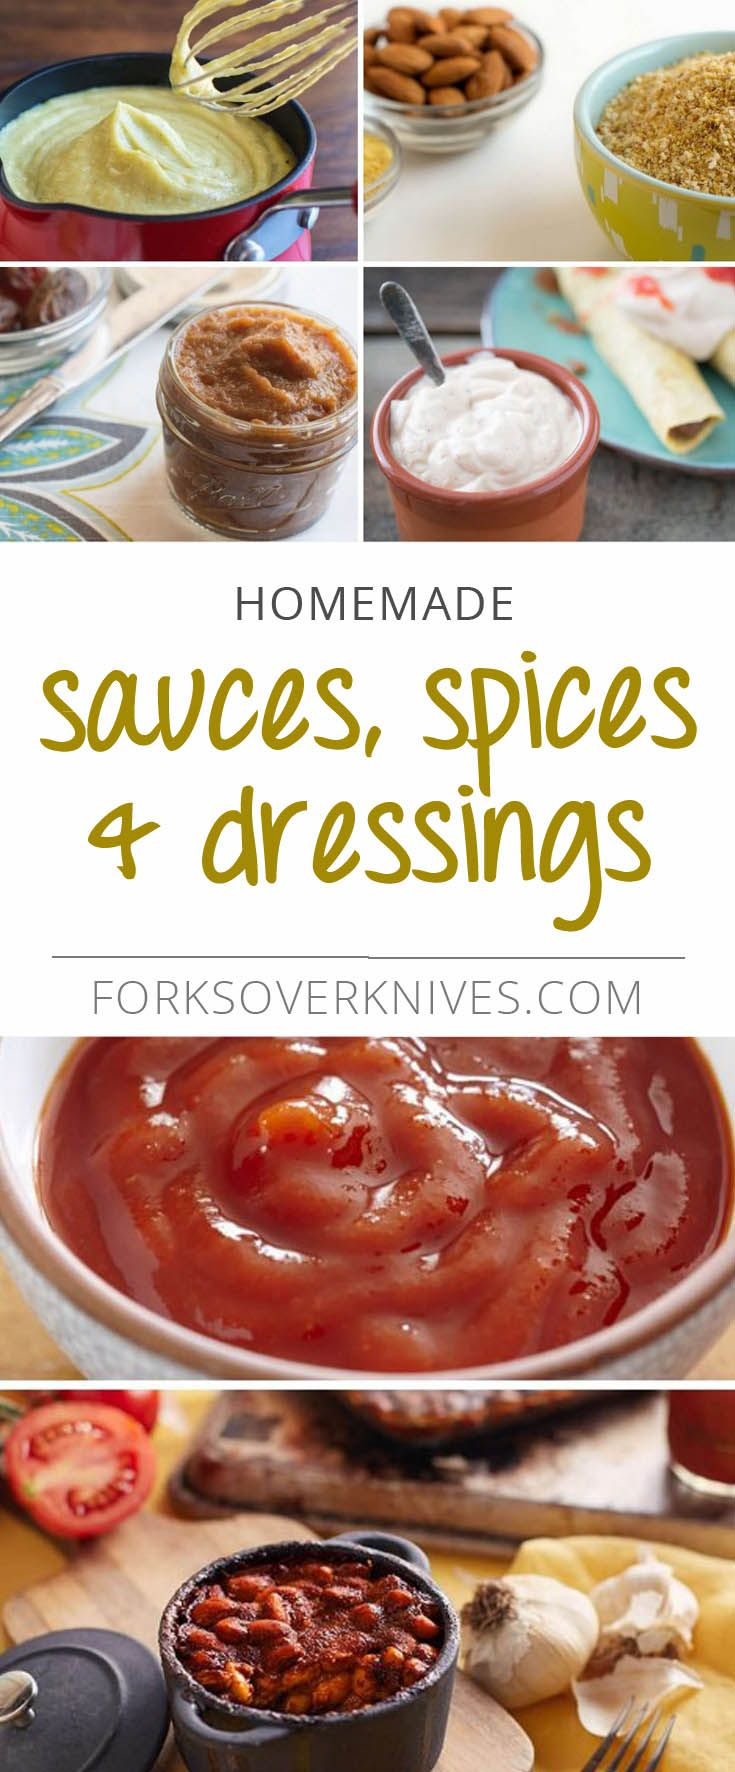 Healthy Homemade Sauces, Spices, and Dressings for Easier Cooking and Baking - Plant-Based Vegan Recipe